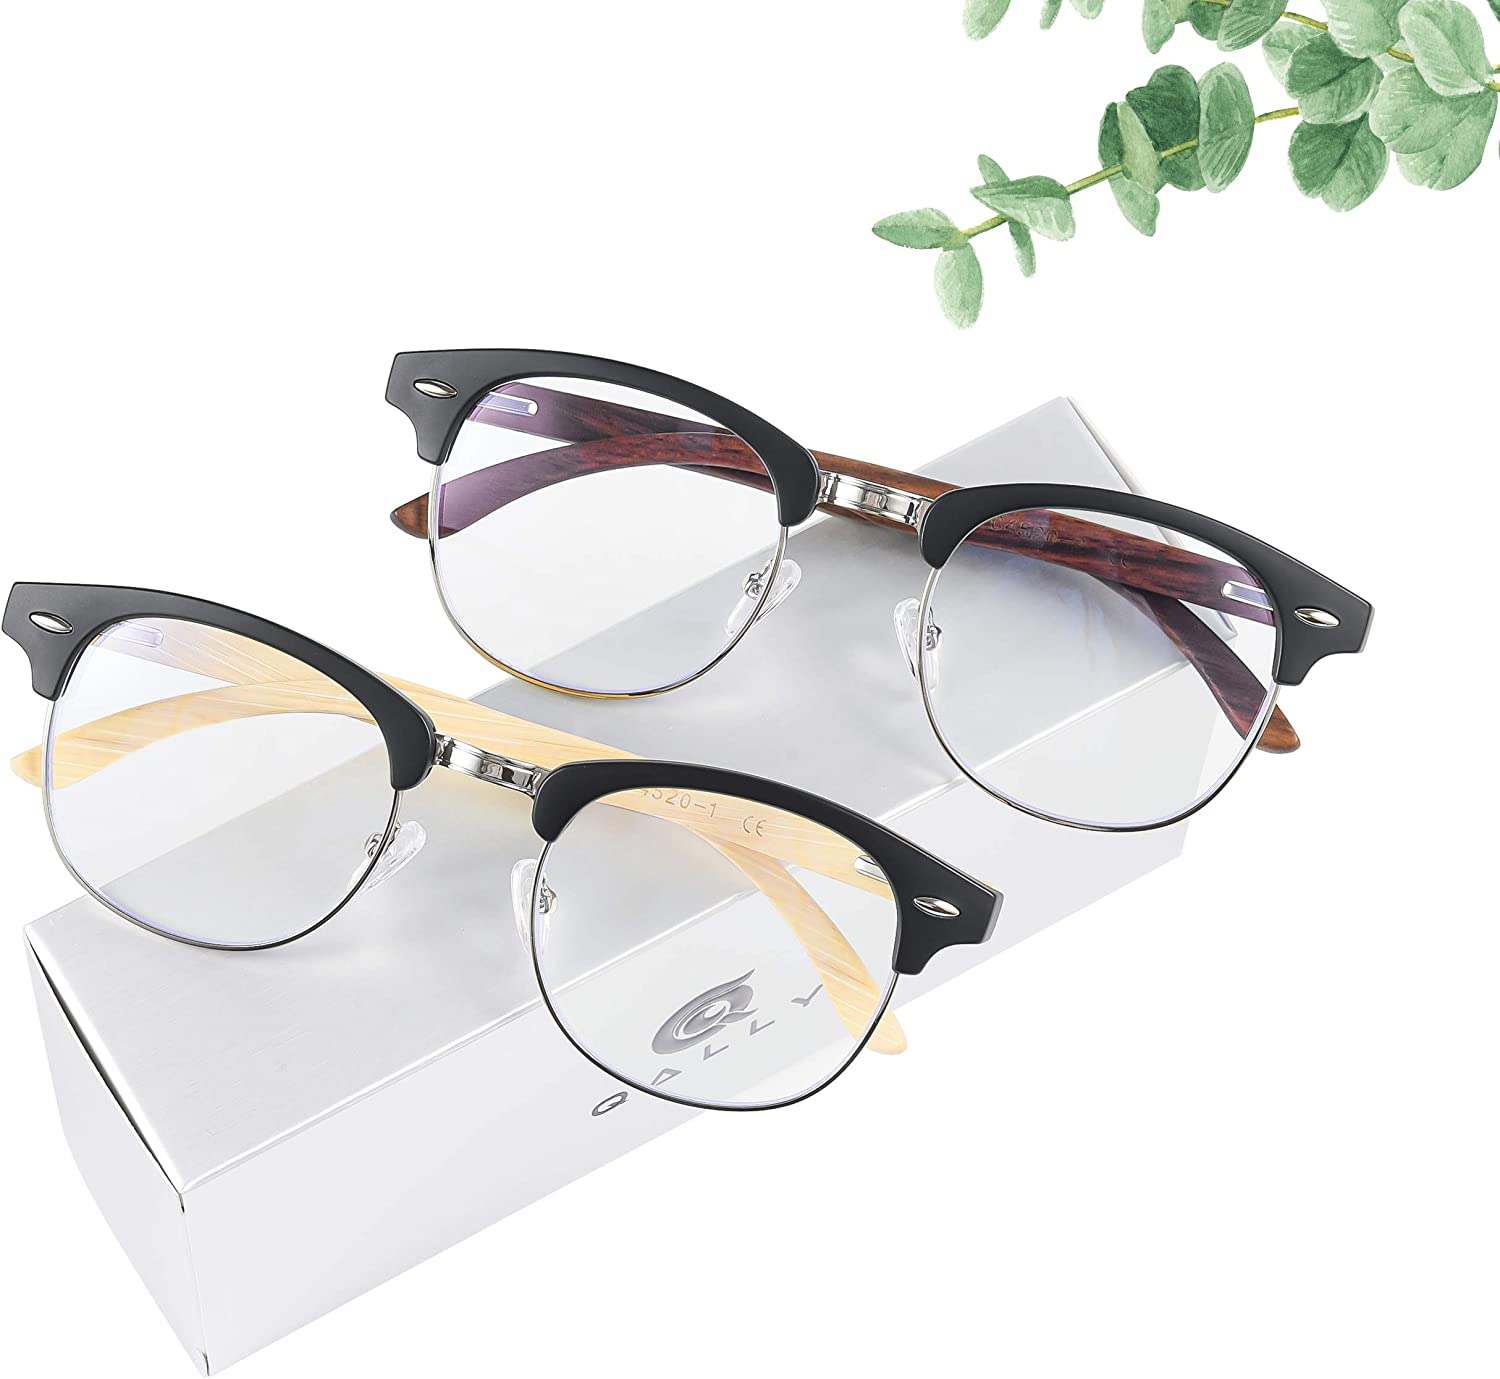 Wood Blue Light Blocking Glasses for Max 85% OFF Computer Men Women Louisville-Jefferson County Mall E Gaming